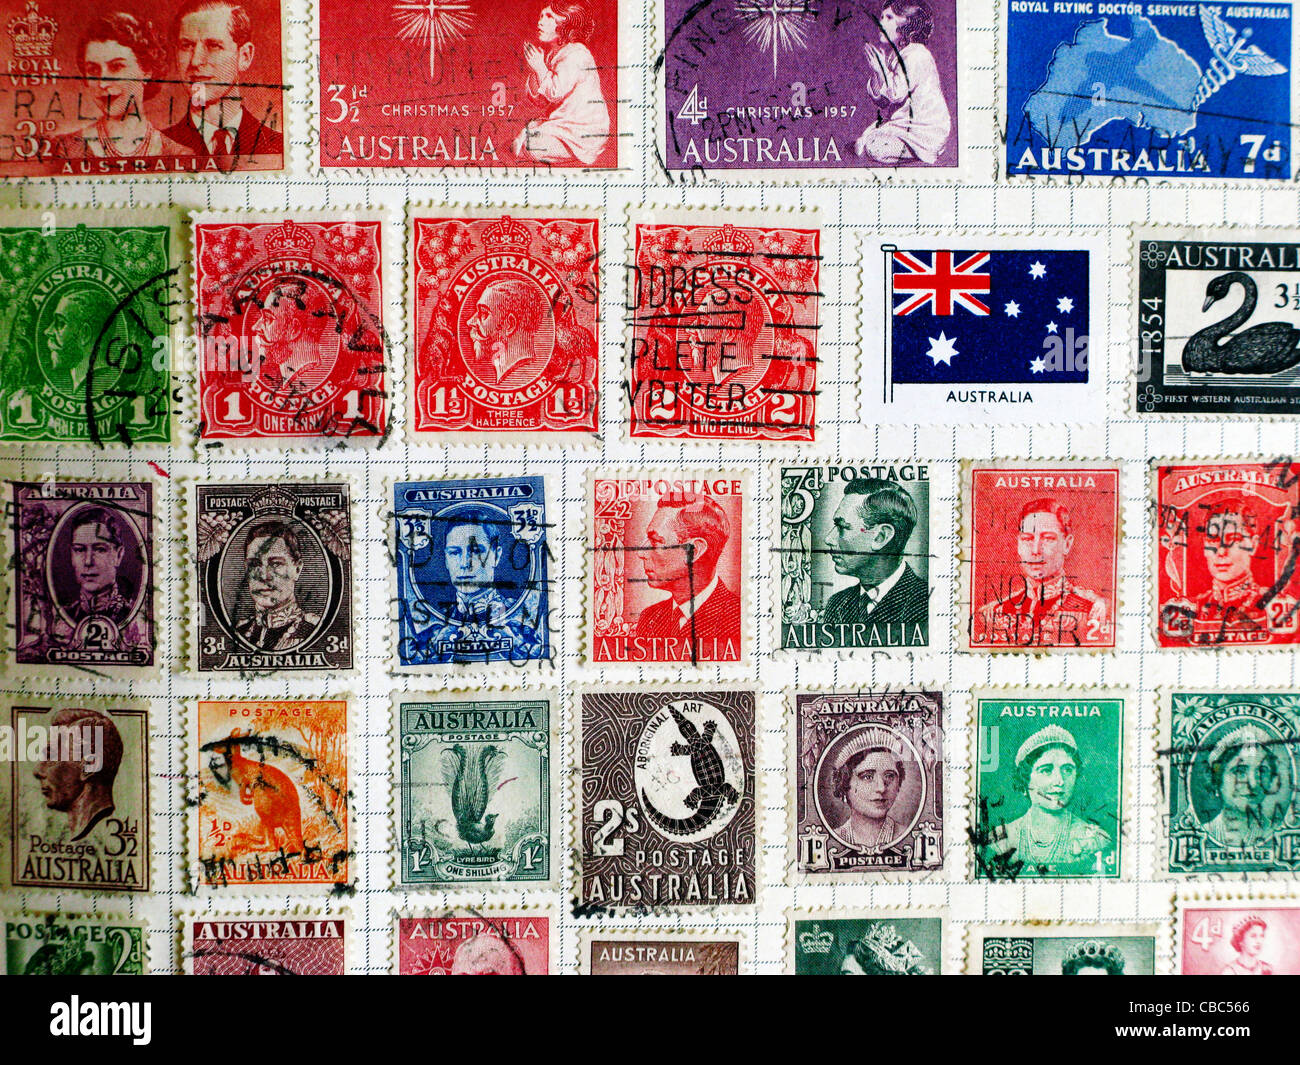 Old Stamps from Australia - Stock Image